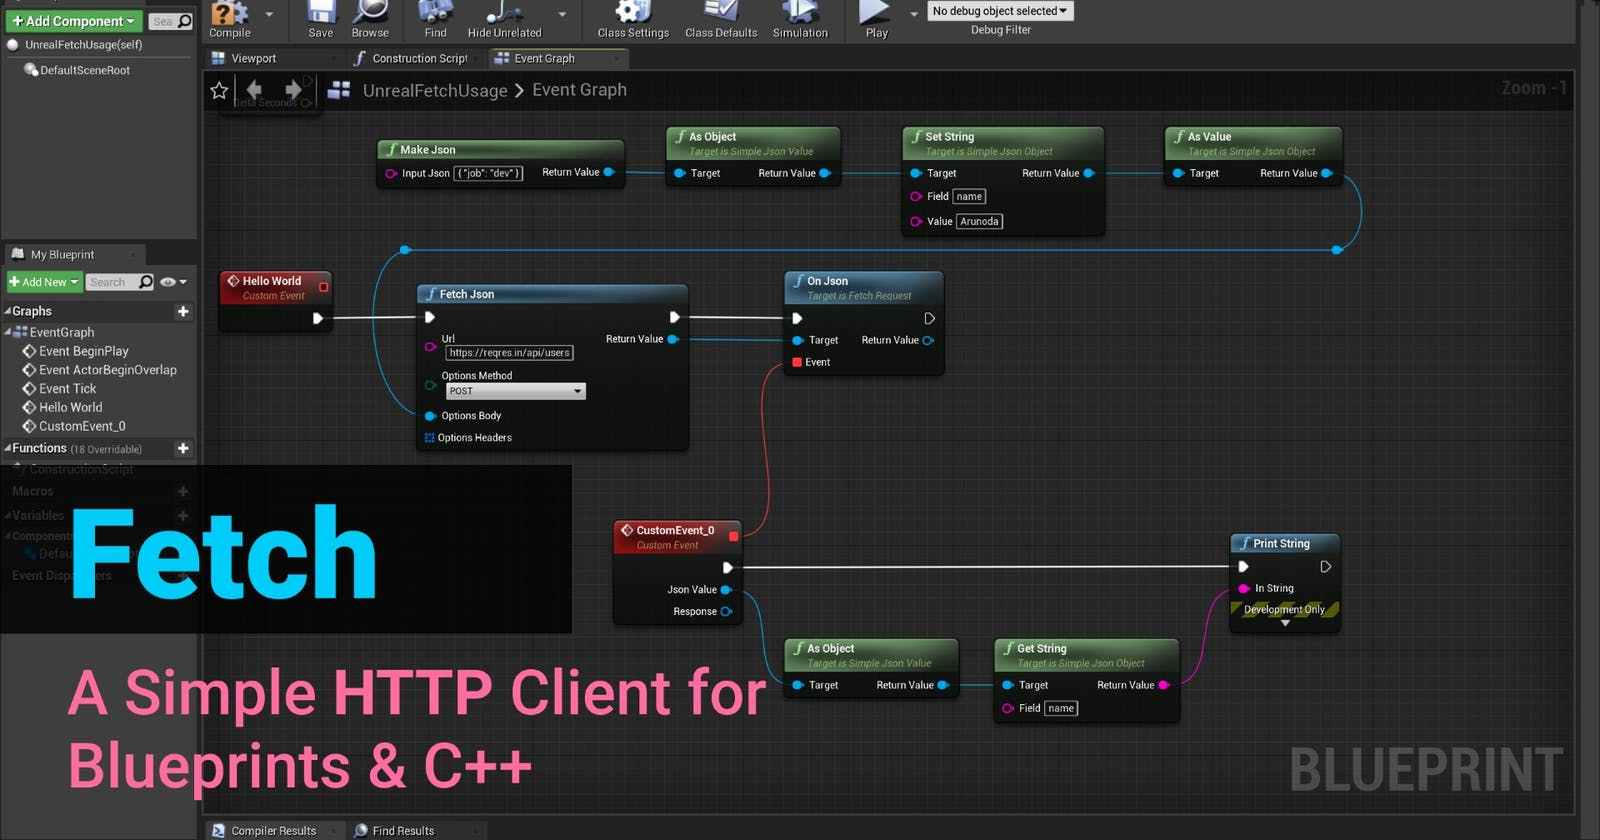 Introducing Fetch - A Simple HTTP Client for Unreal Engine